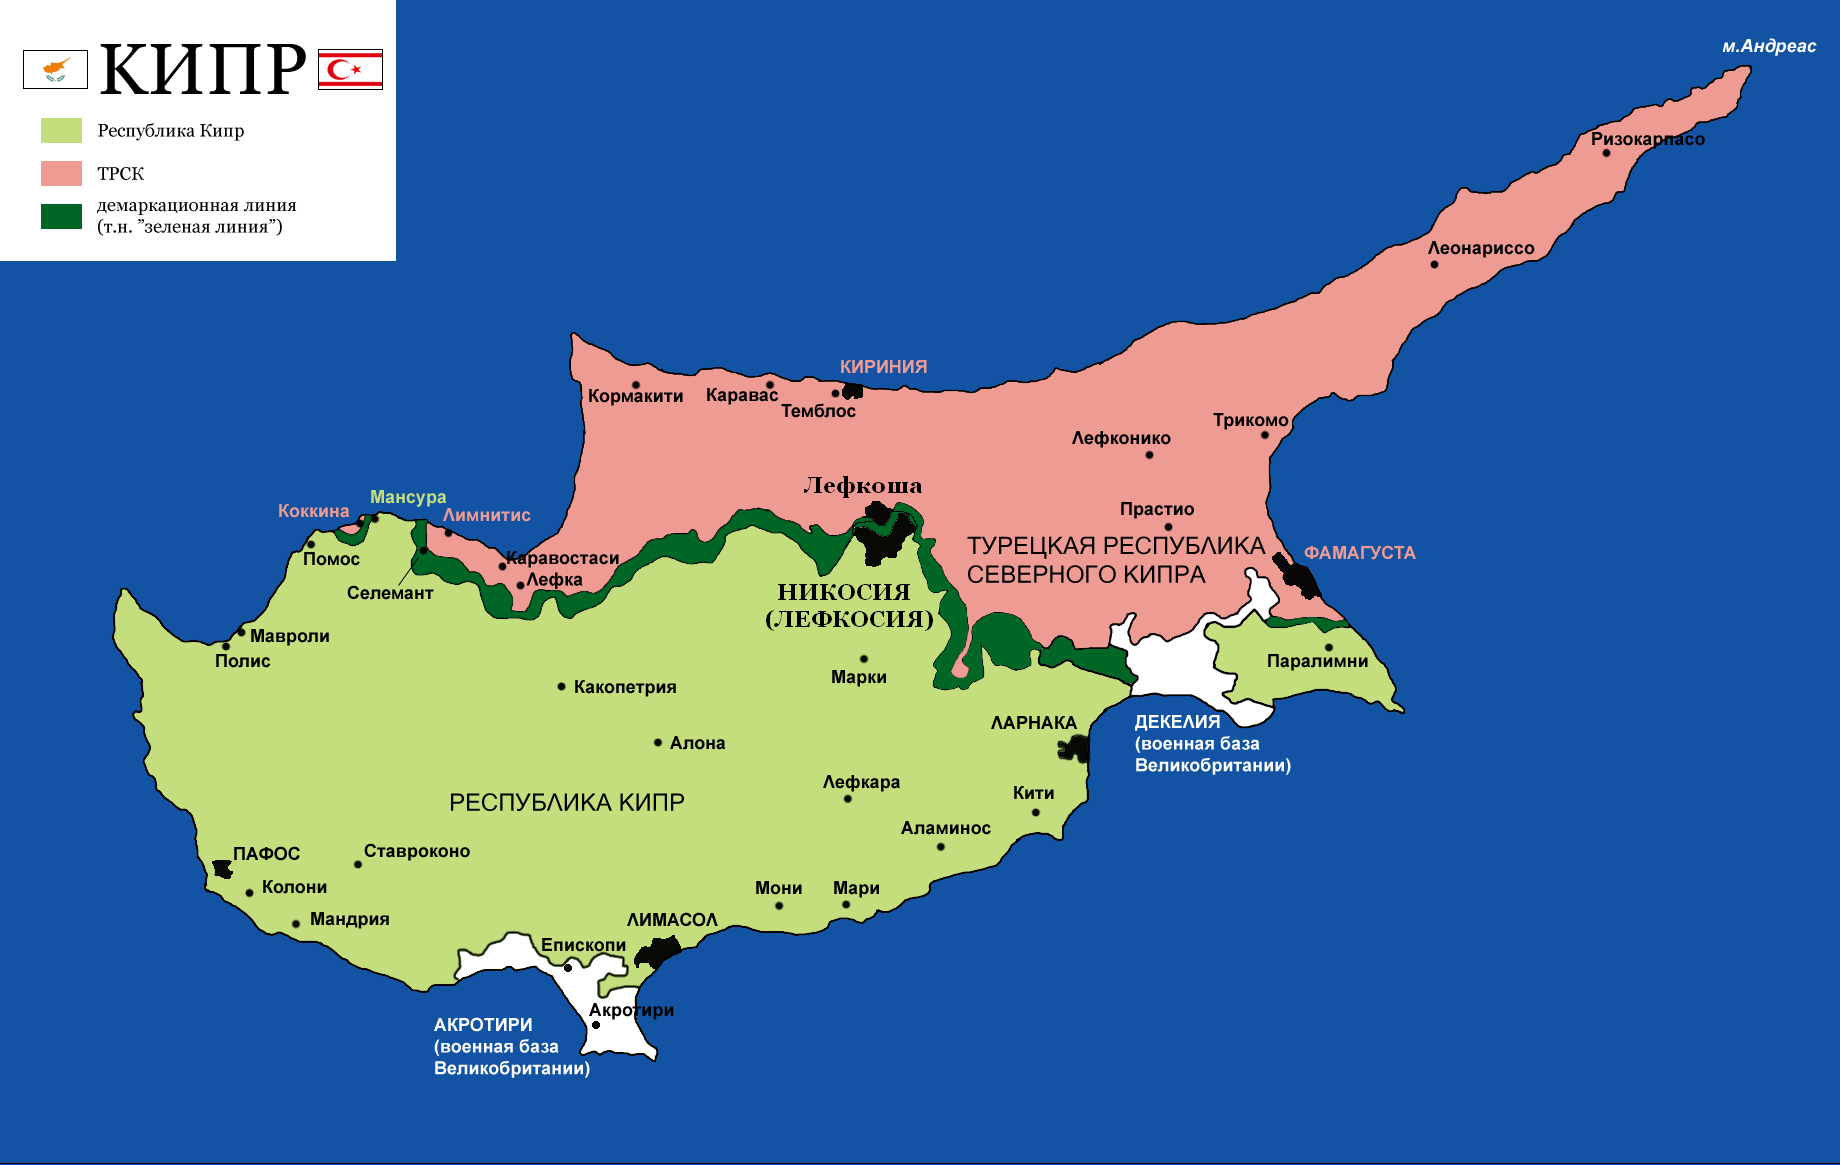 CYPRUS MAP.png